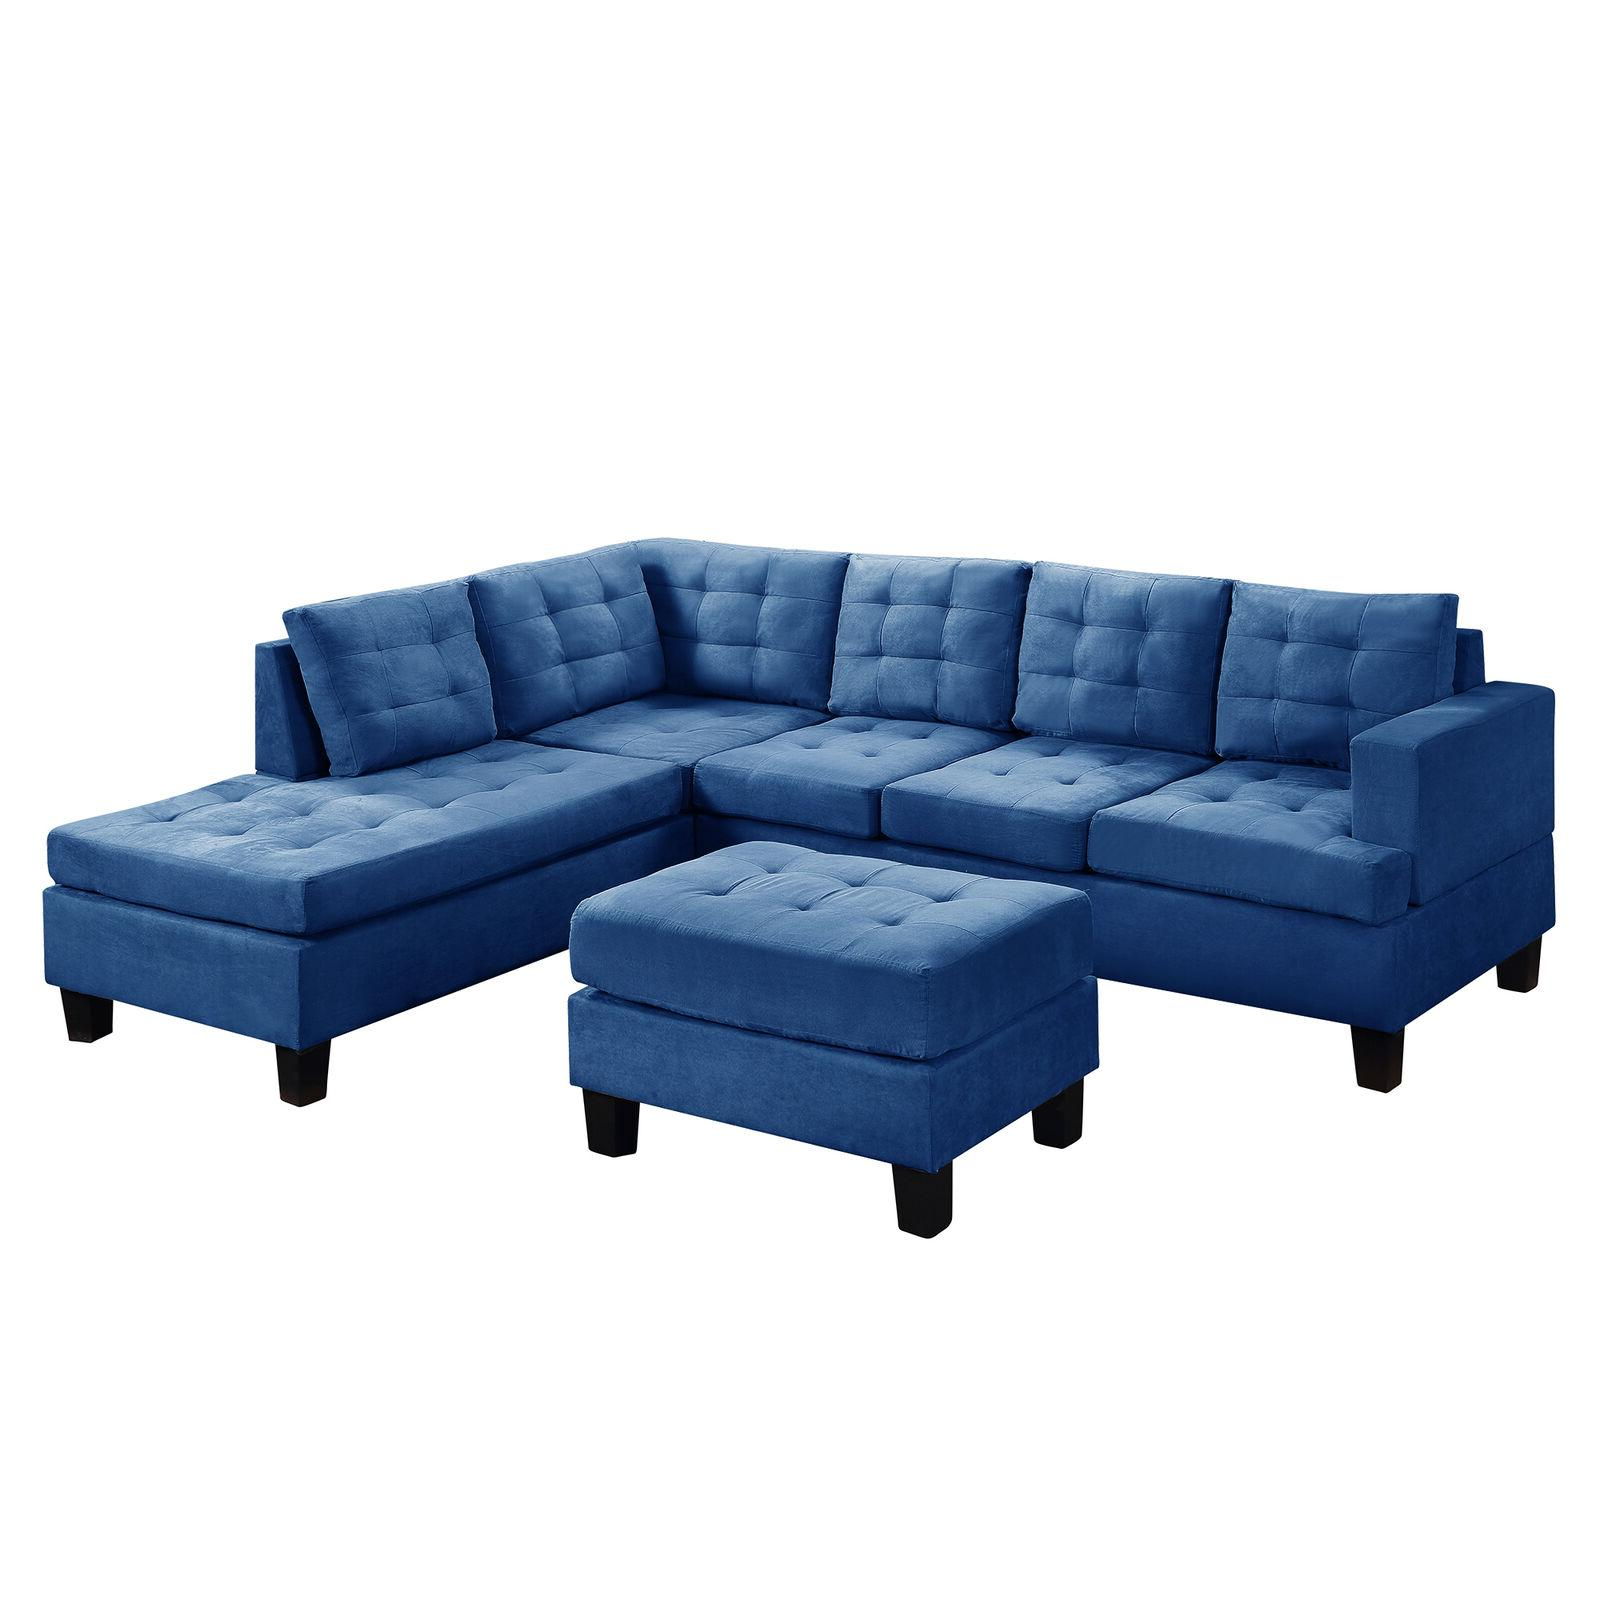 3-Piece Lounge L-Shaped Couch